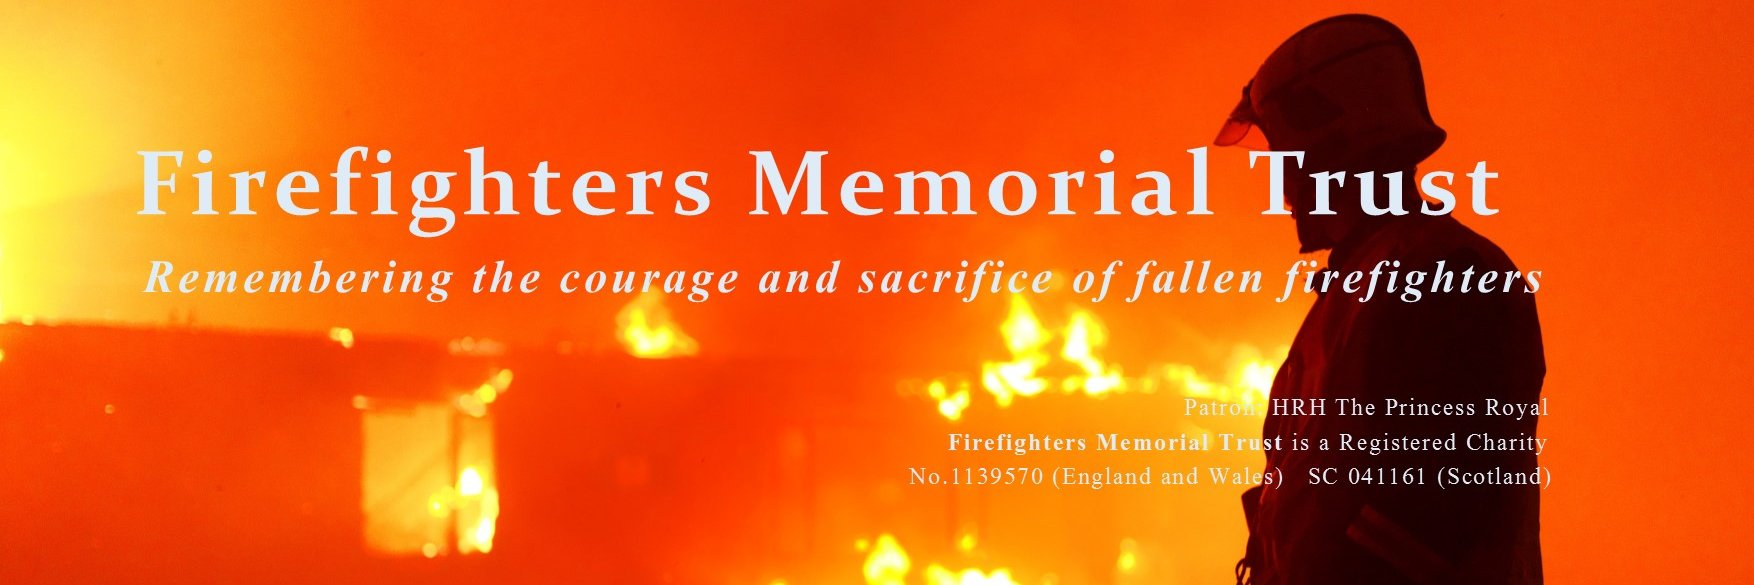 At 12.00 on 4th May, fire stations across the UK will hold a minute's silence to commemorate the bravery and sacrif… https://t.co/FptQzH88UY